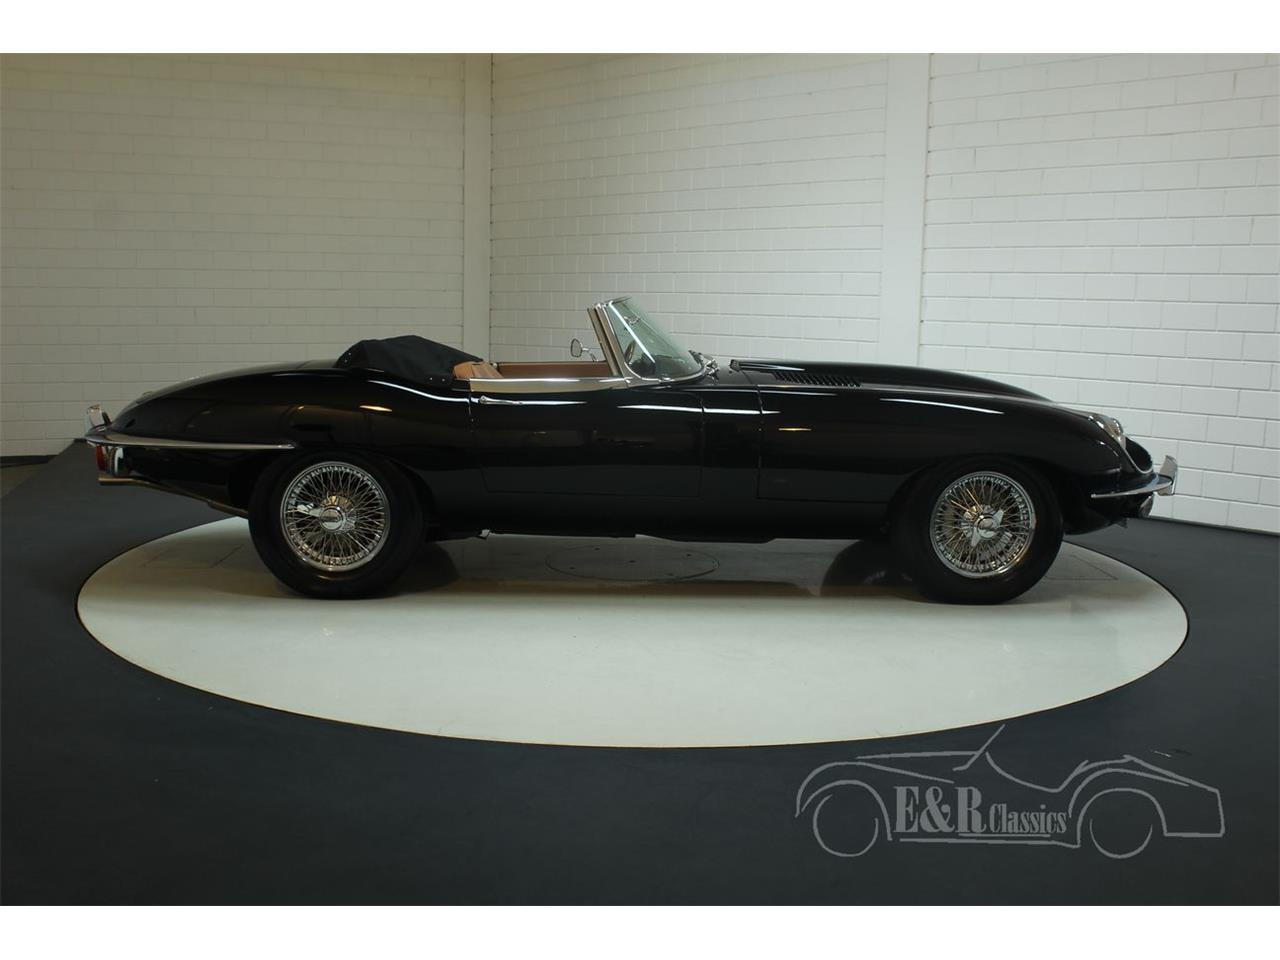 Large Picture of 1969 Jaguar E-Type located in noord brabant - $145,500.00 Offered by E & R Classics - QOU8